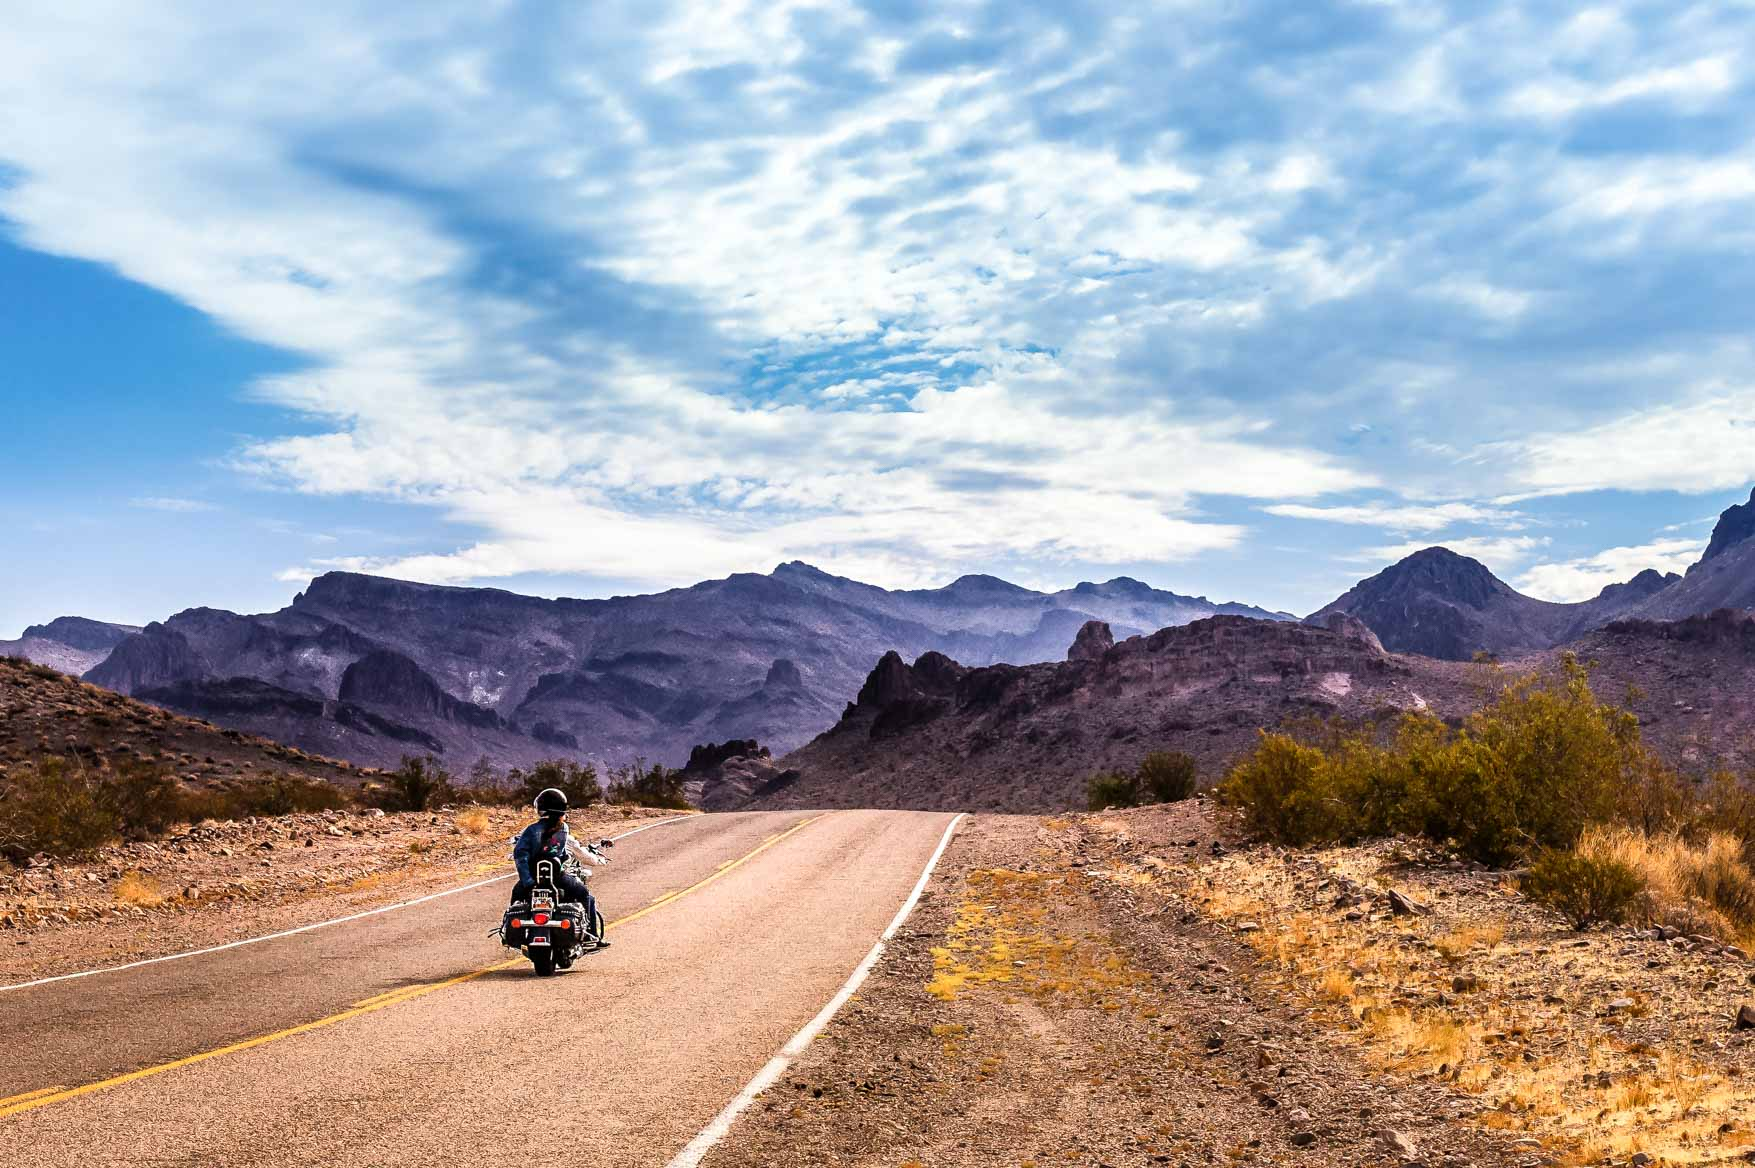 Bikers Route 66 - In Viaggio Con Monica